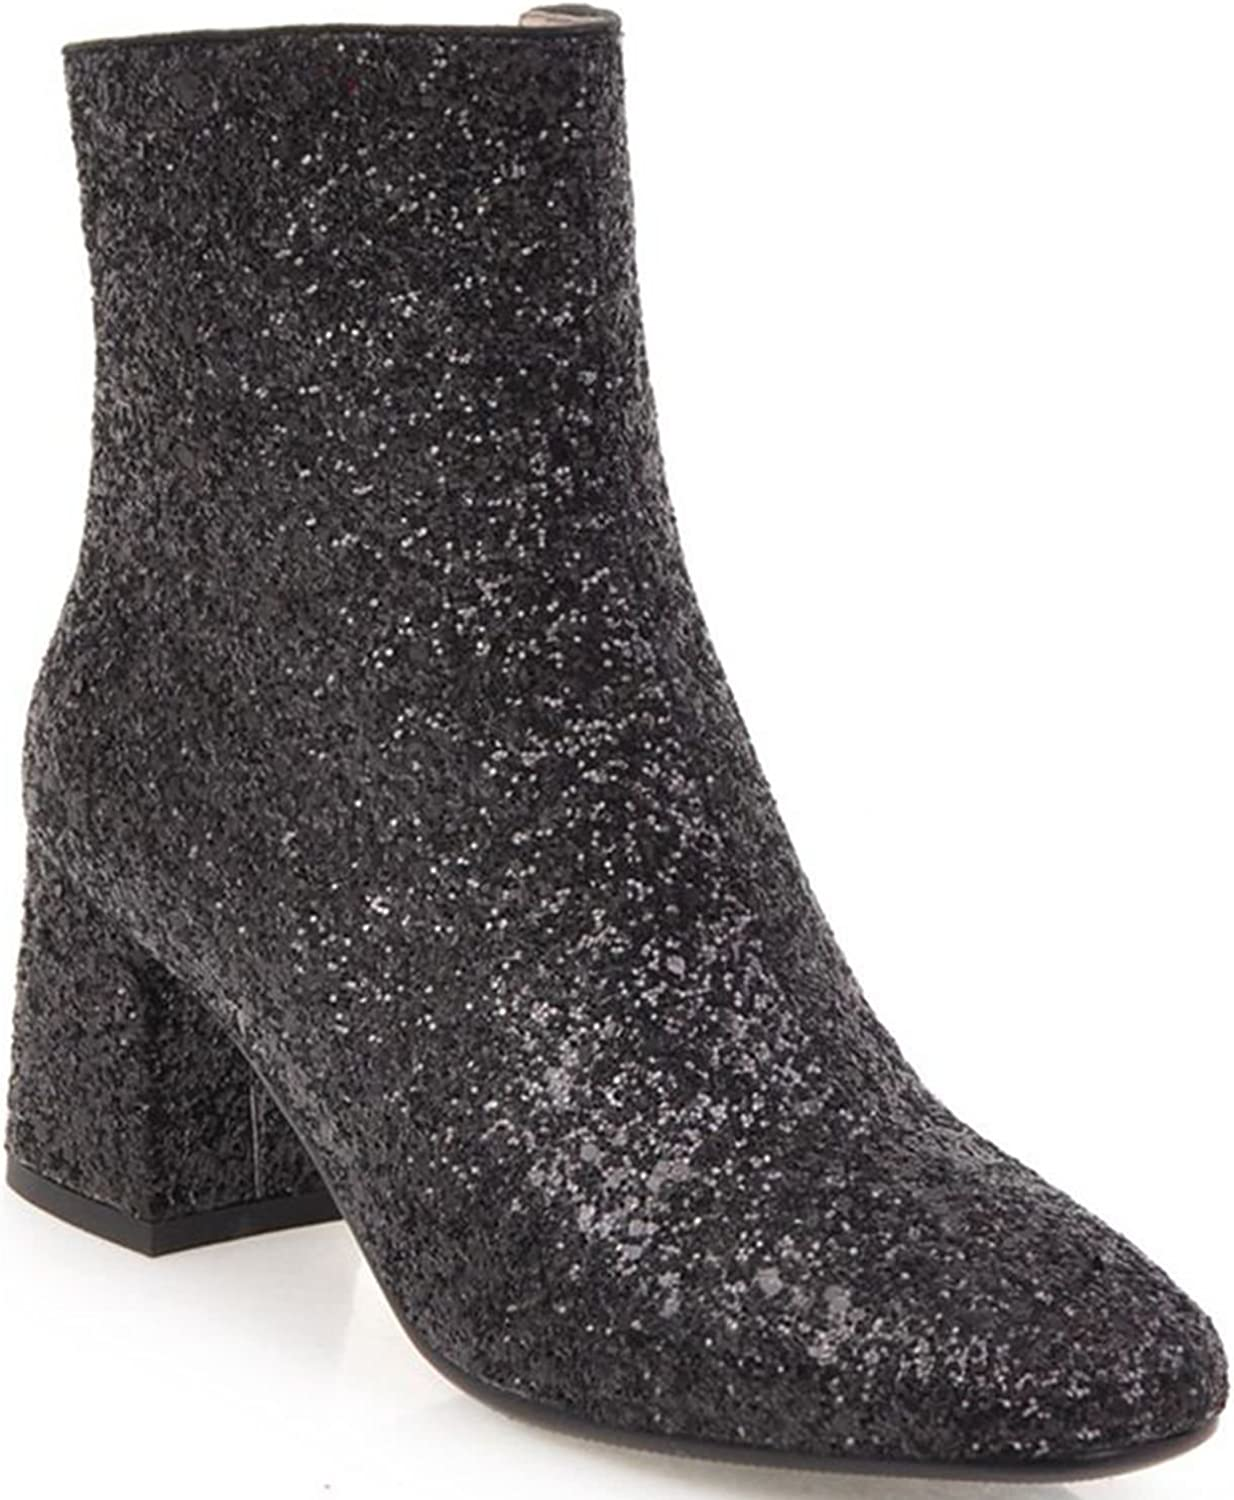 KingRover Women's Sequined Square-toe Chunky Heel Bootie